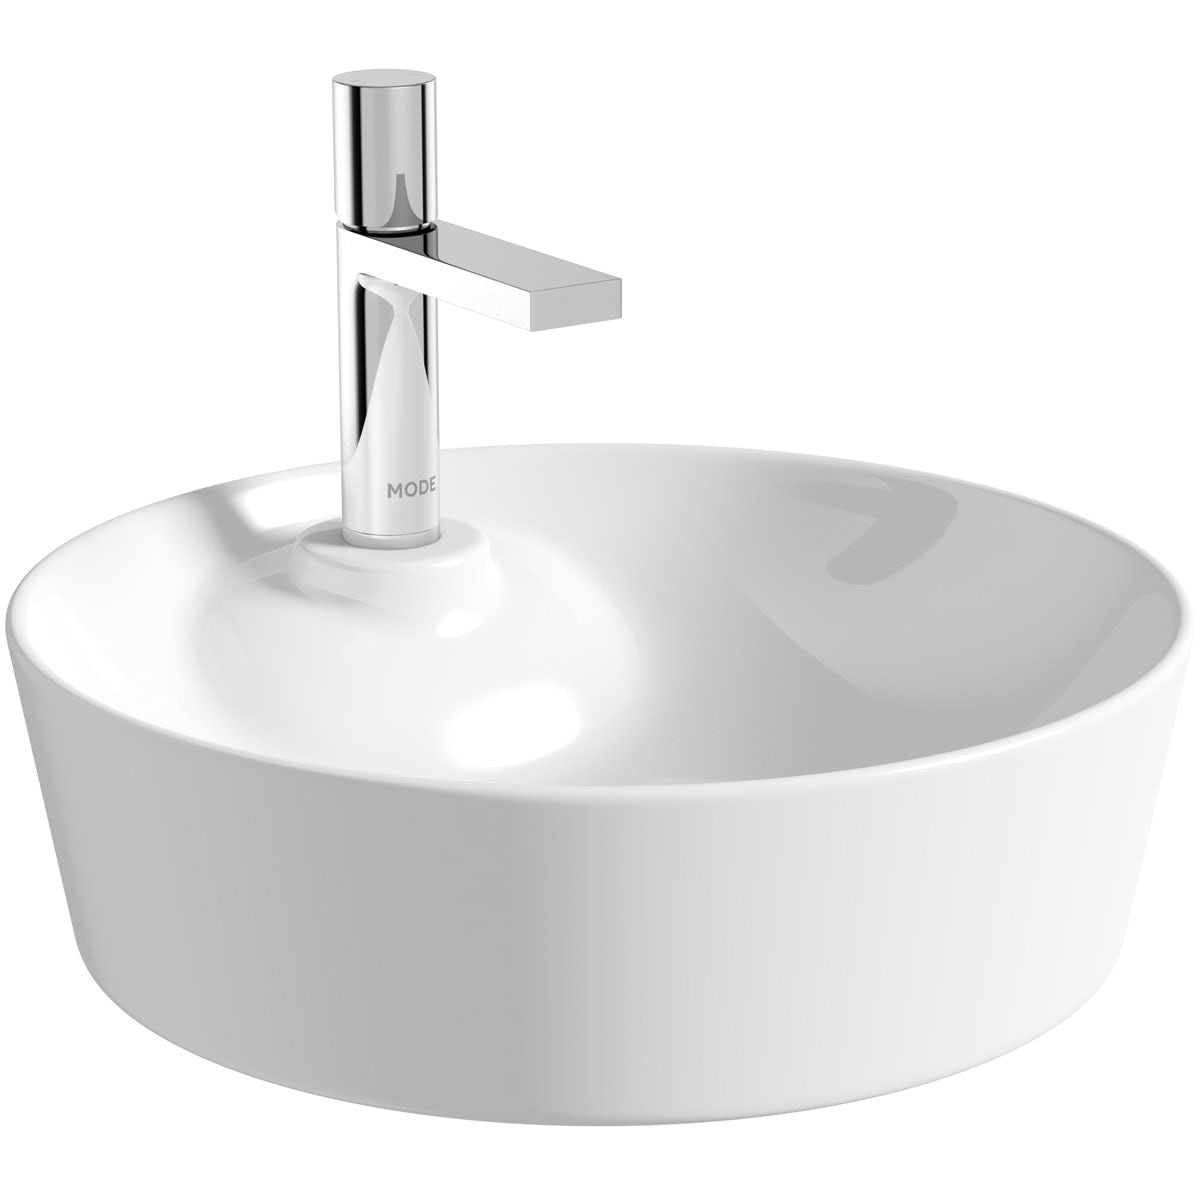 Mode Fairey round thin edge 1 tap hole basin 450mm with waste